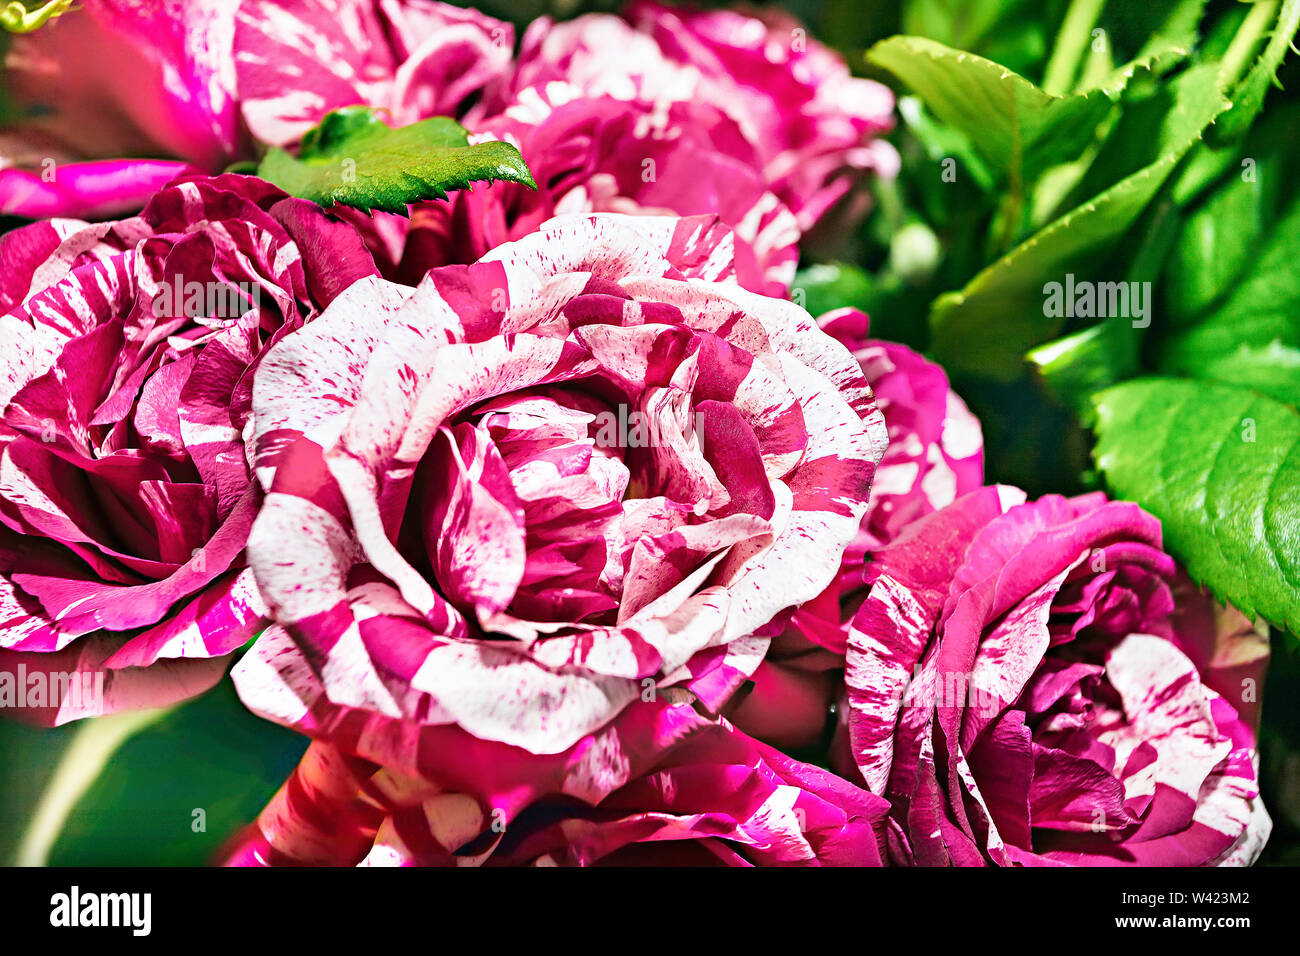 Dragon roses bunch closes up with green leaves around with details and bright colors - Stock Image